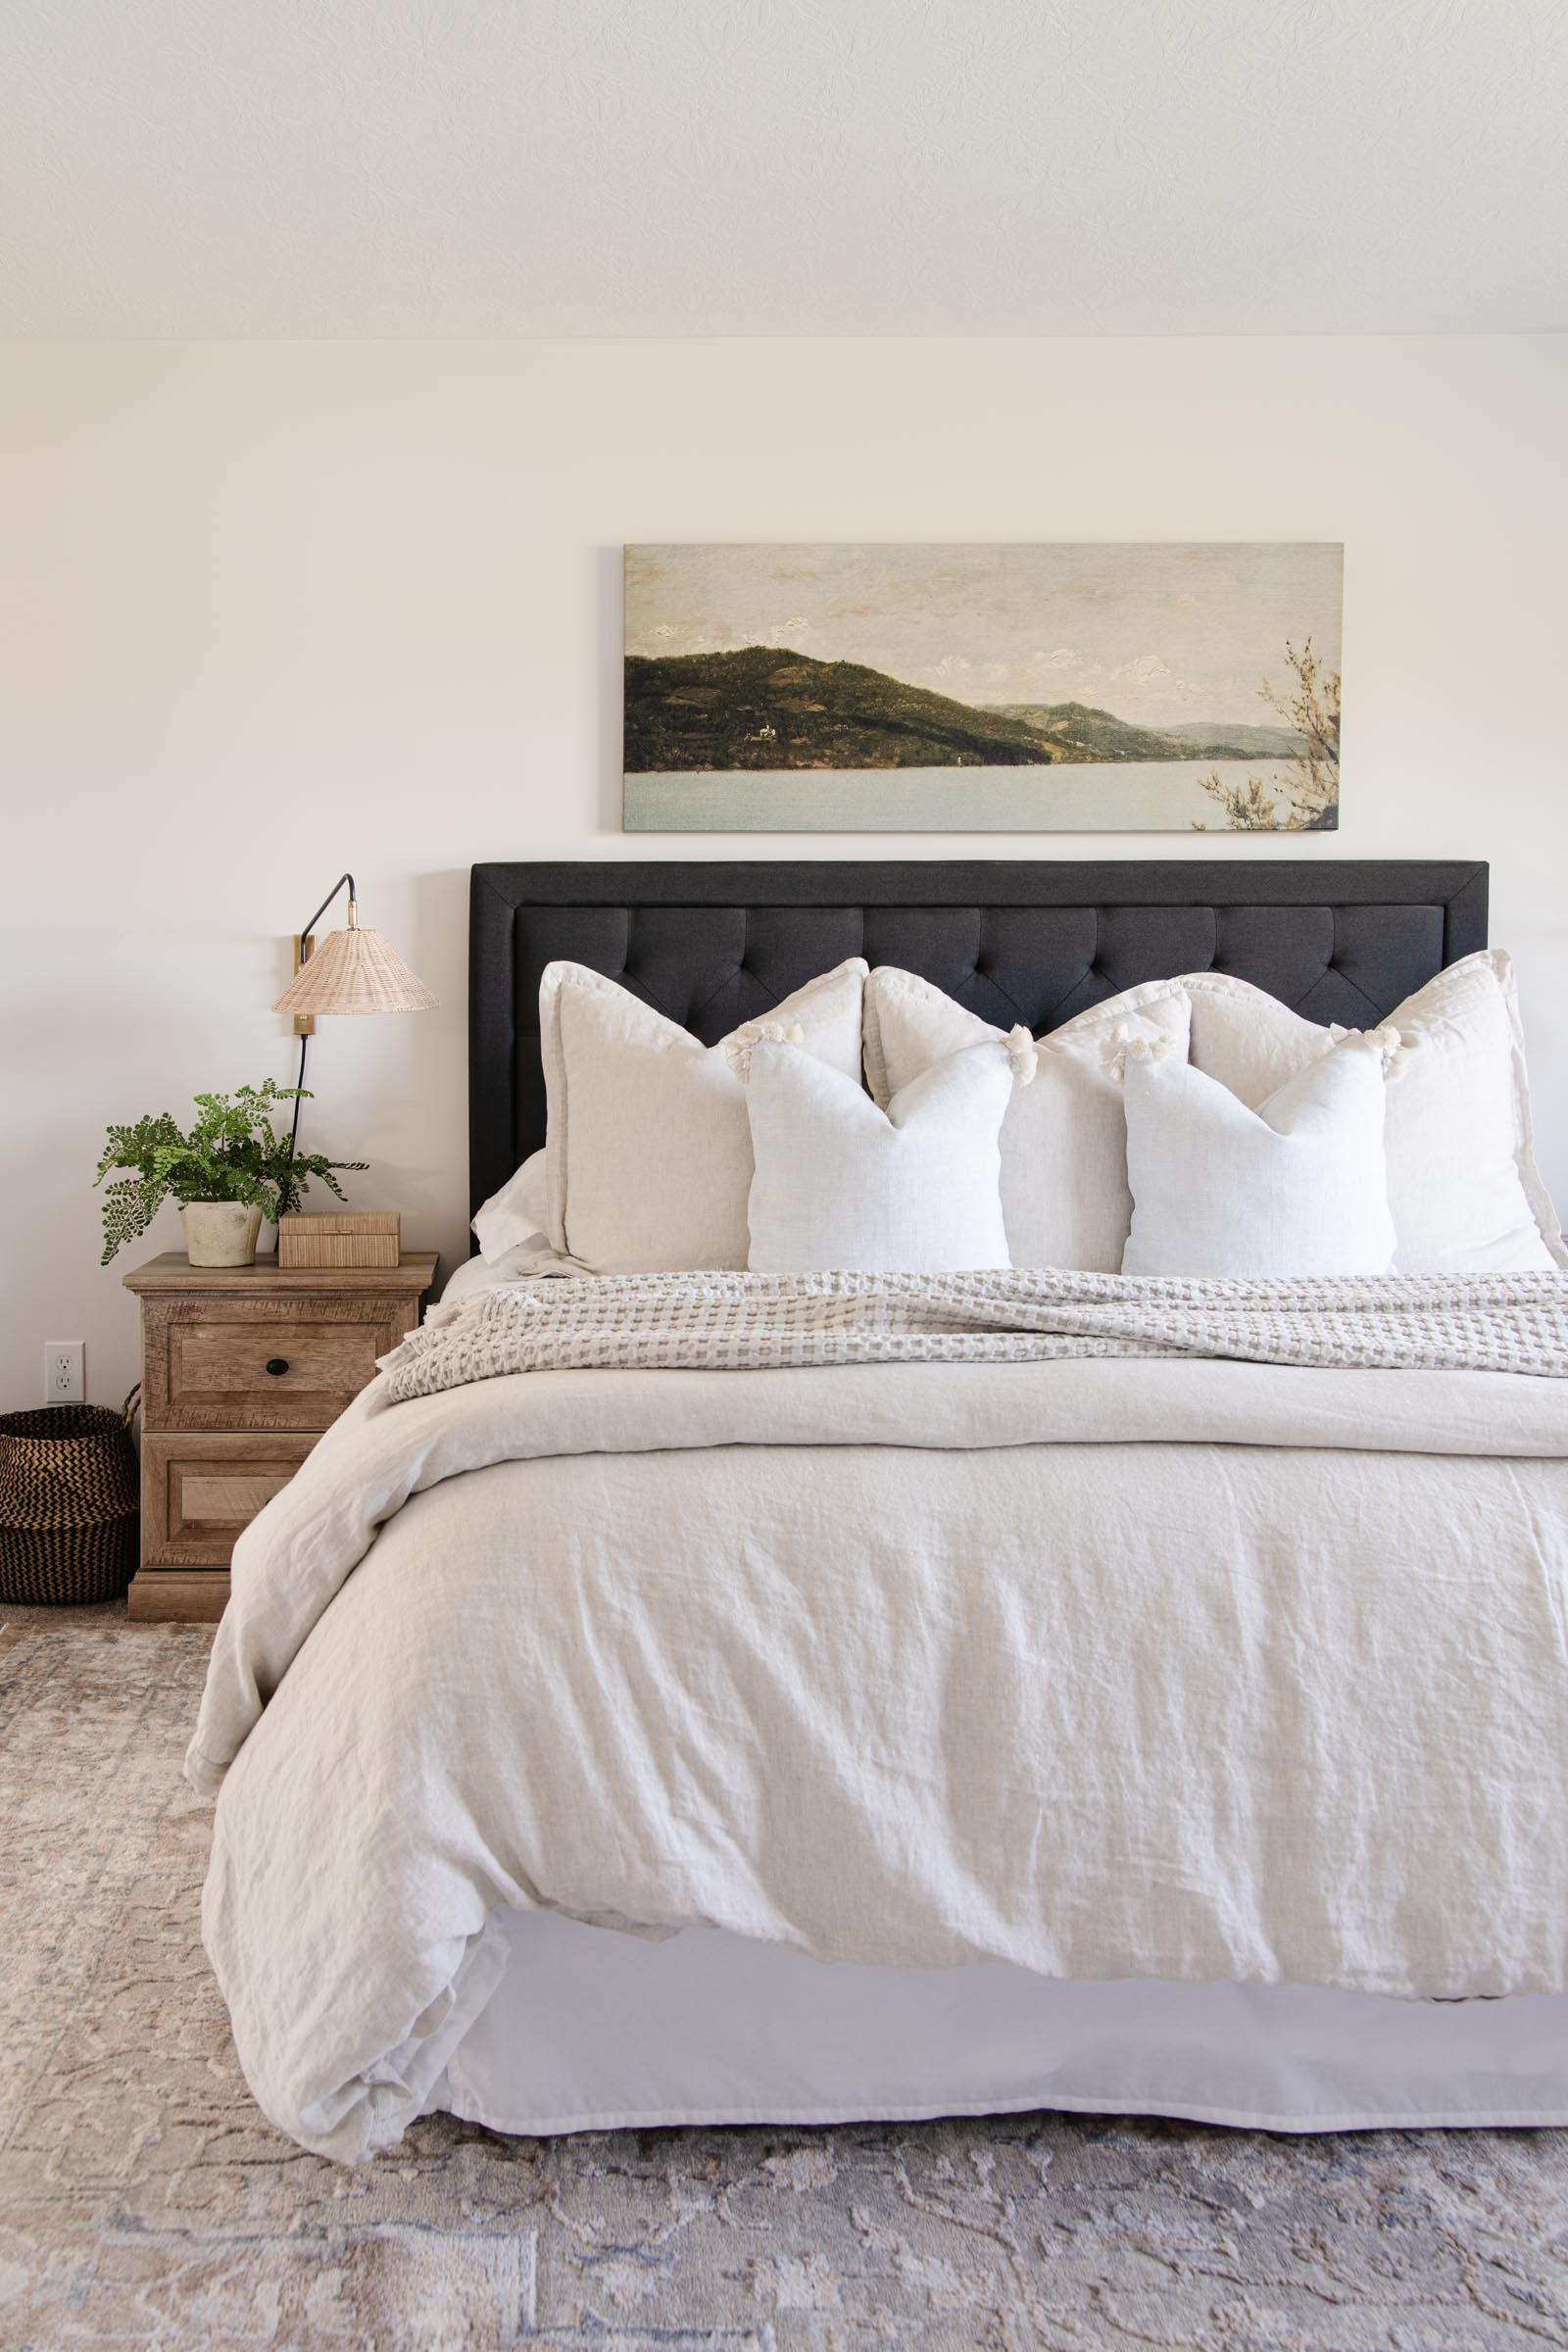 bedroom with beige linen duvet cover, long landscape painting, Flynn single wall sconce with wicker shade, beachcomber cotton throw